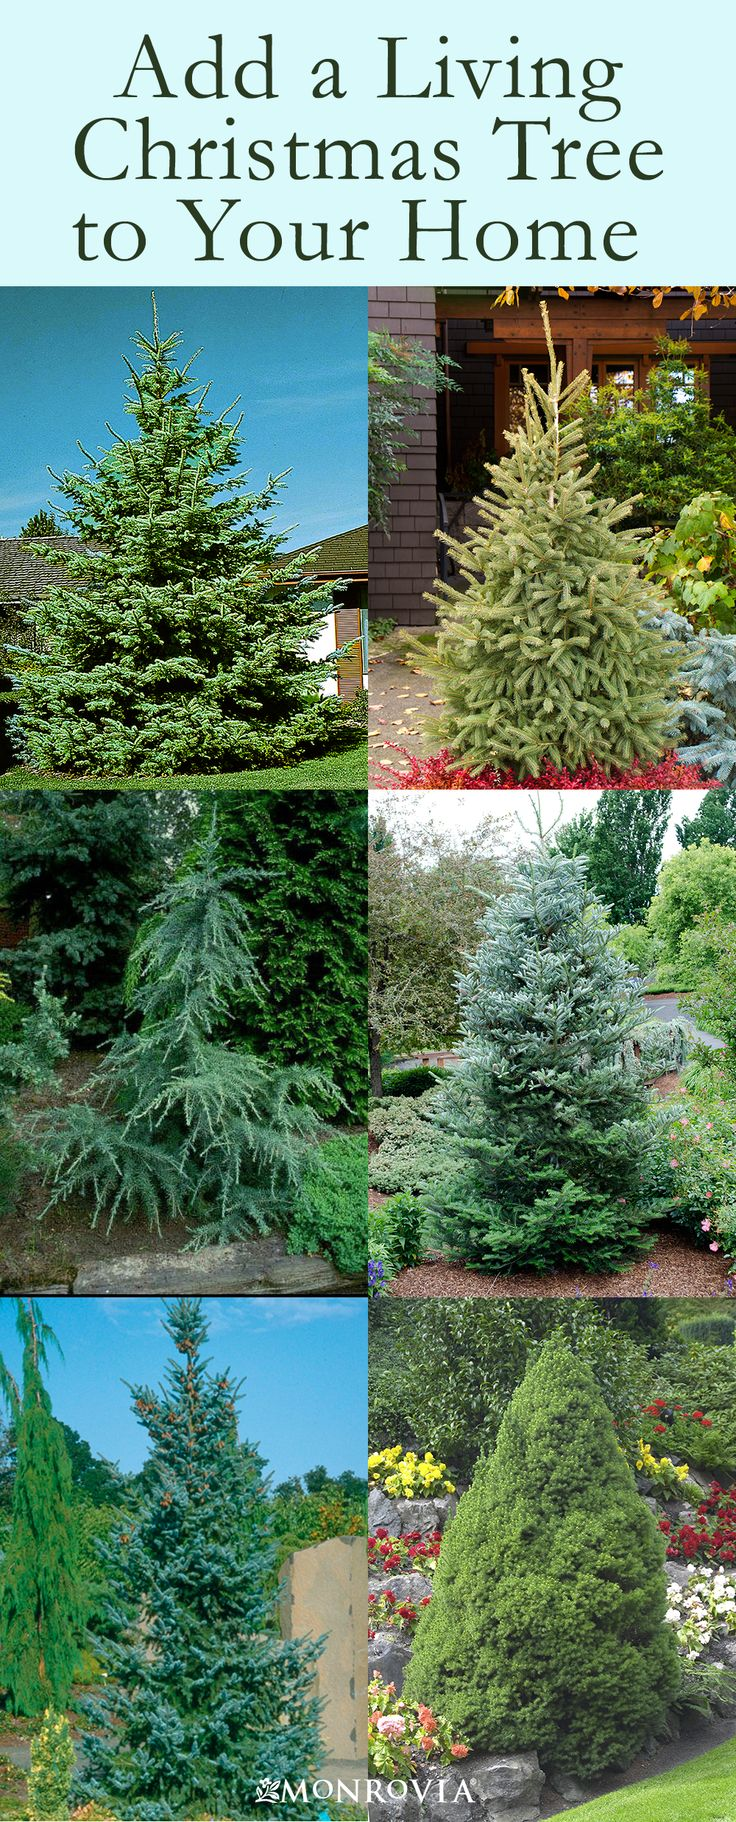 7 Ft Black Wrought Iron Christmas Tree - How to buy and care for a living christmas tree how about a living christmas